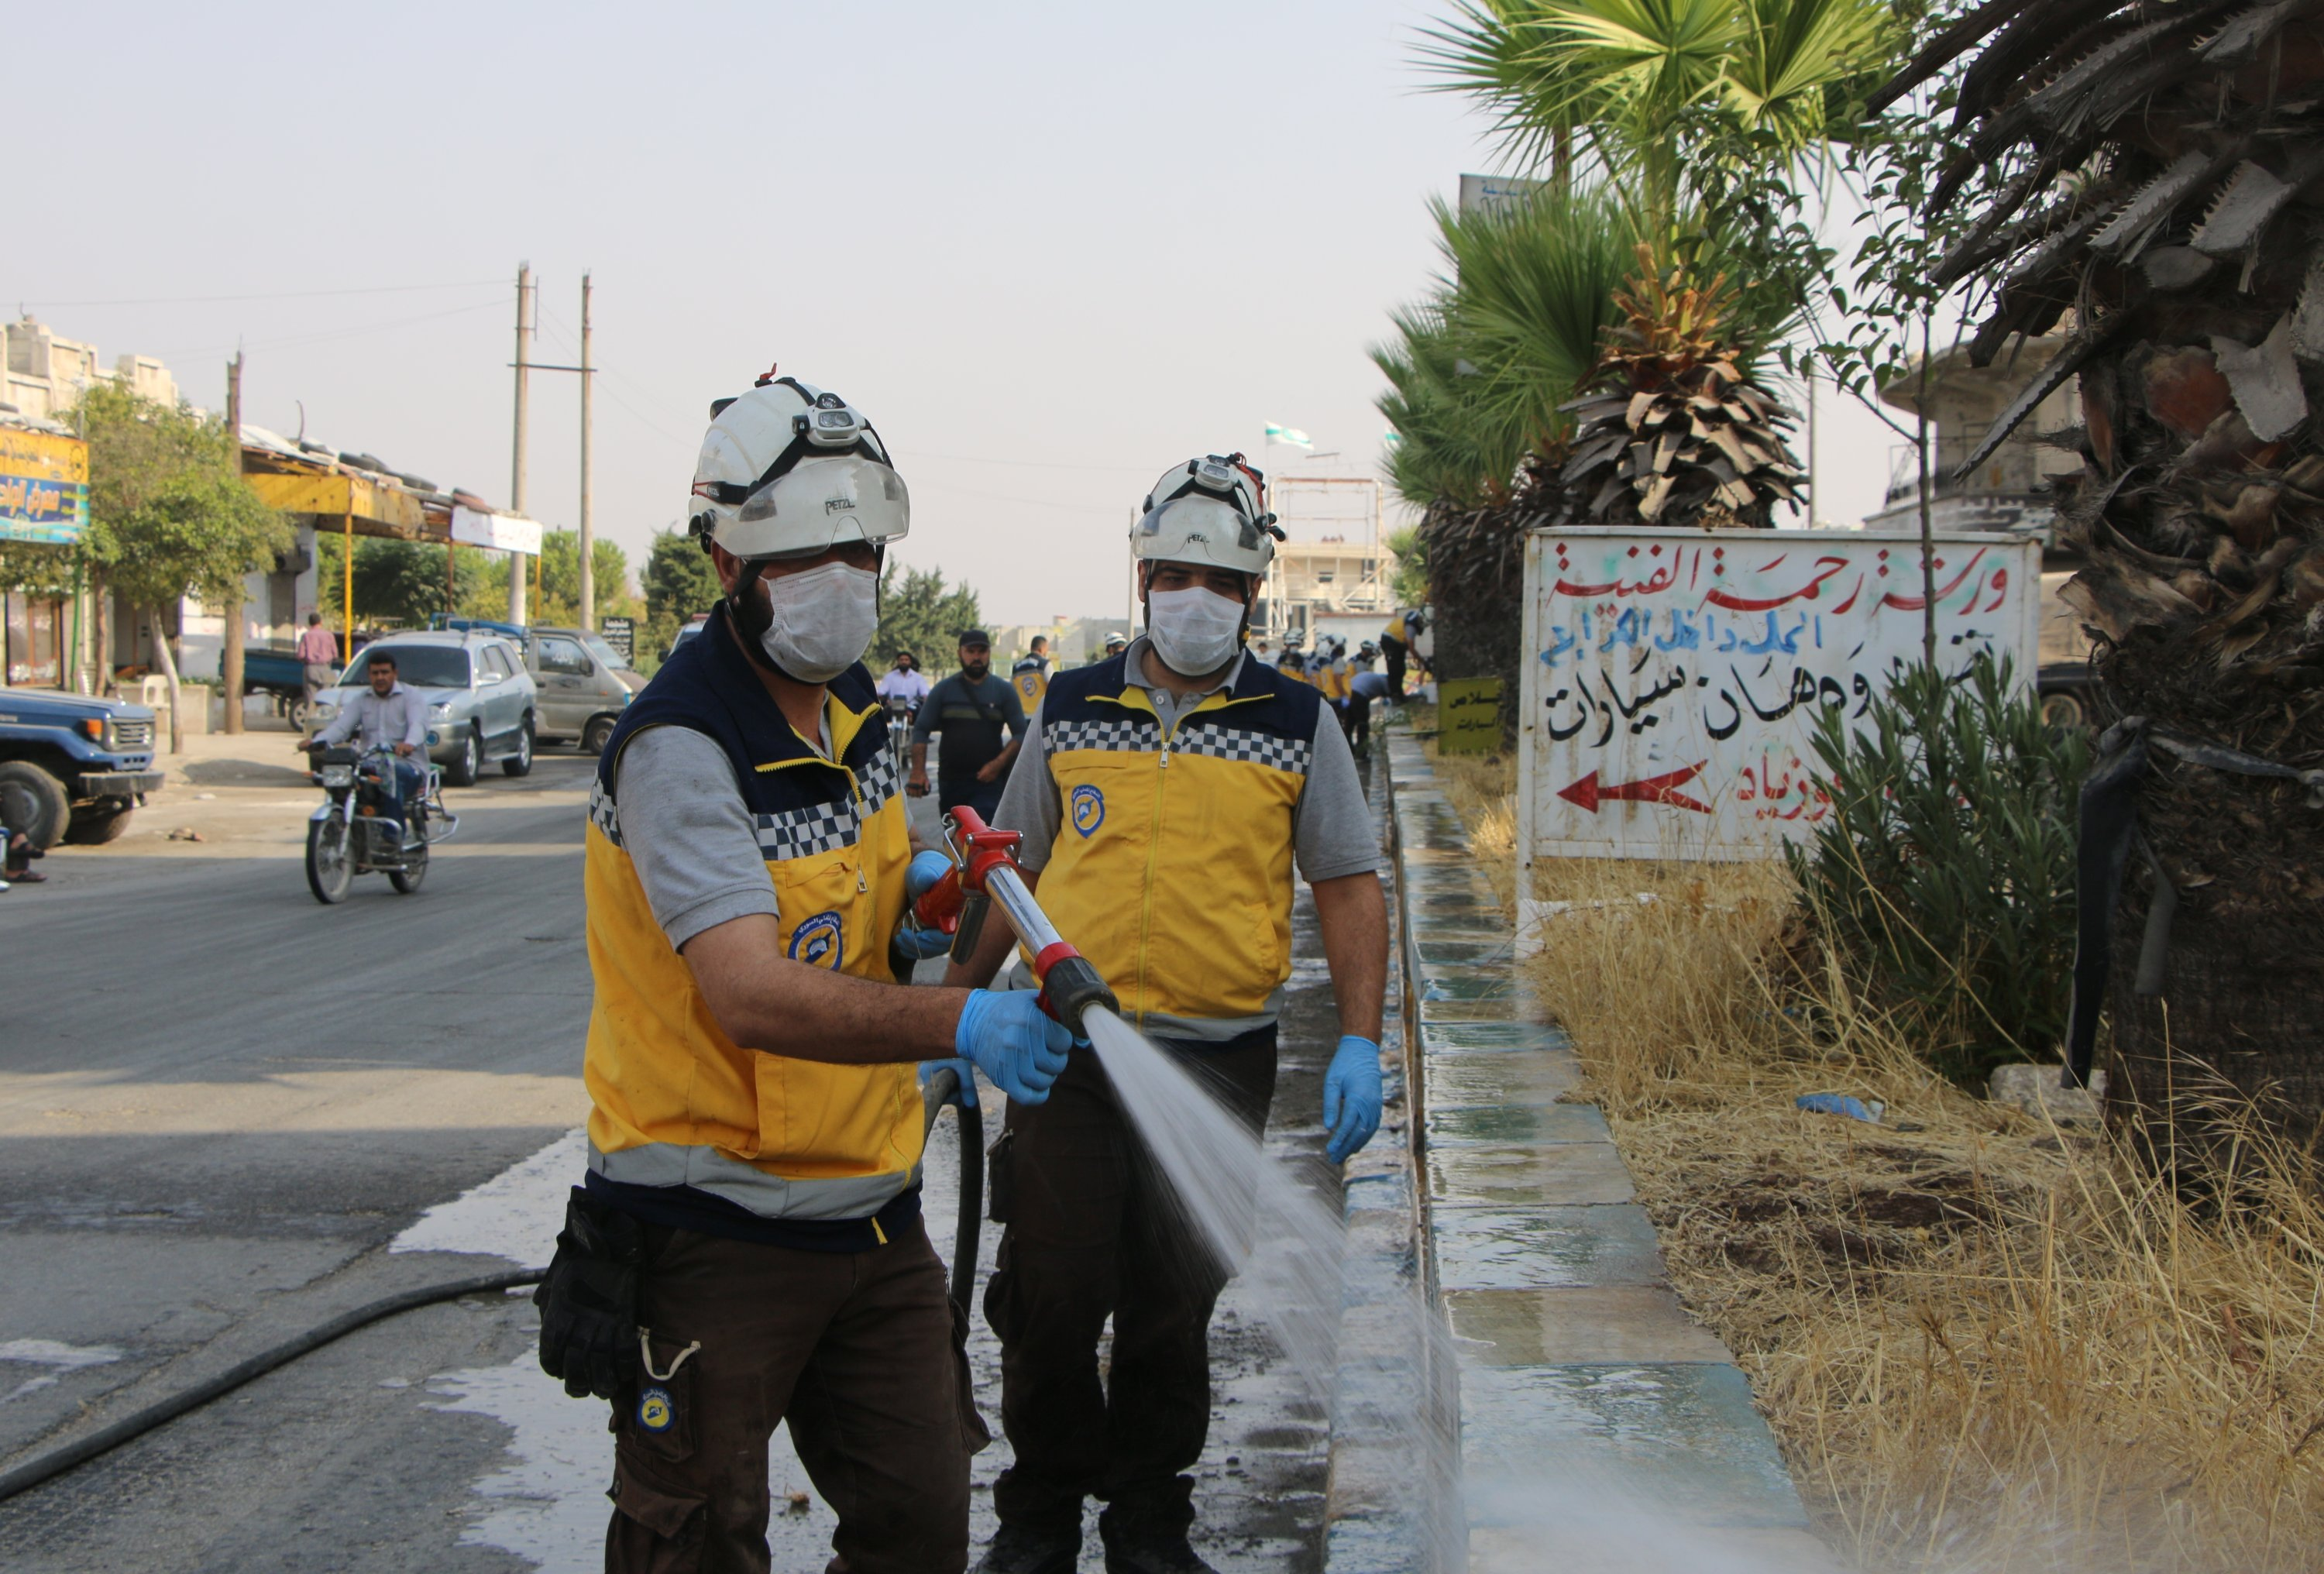 White Helmets volunteers wash town streets in an effort to recover from the damage left by Syrian regime attacks, Idlib, Syria, Sept. 24. 2020. (AA)